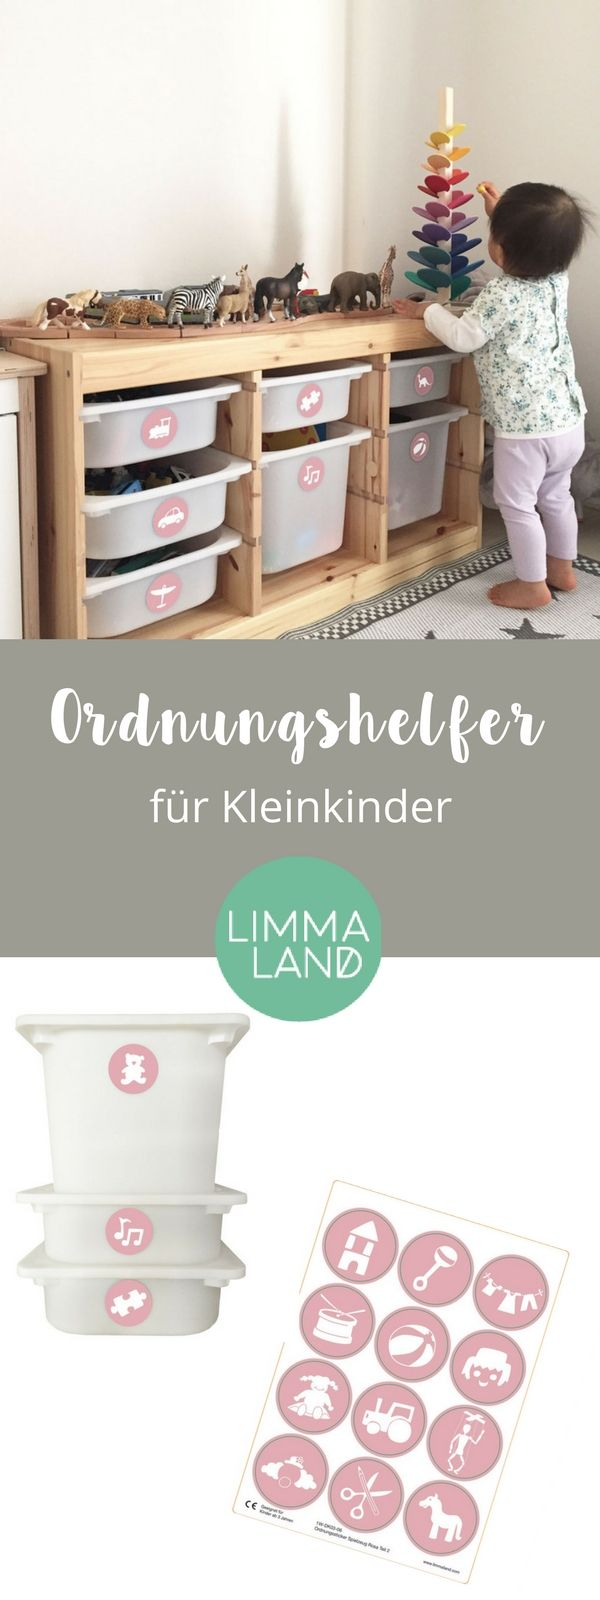 48 besten diy wolken bilder auf pinterest kinderzimmer basteln und wolke. Black Bedroom Furniture Sets. Home Design Ideas